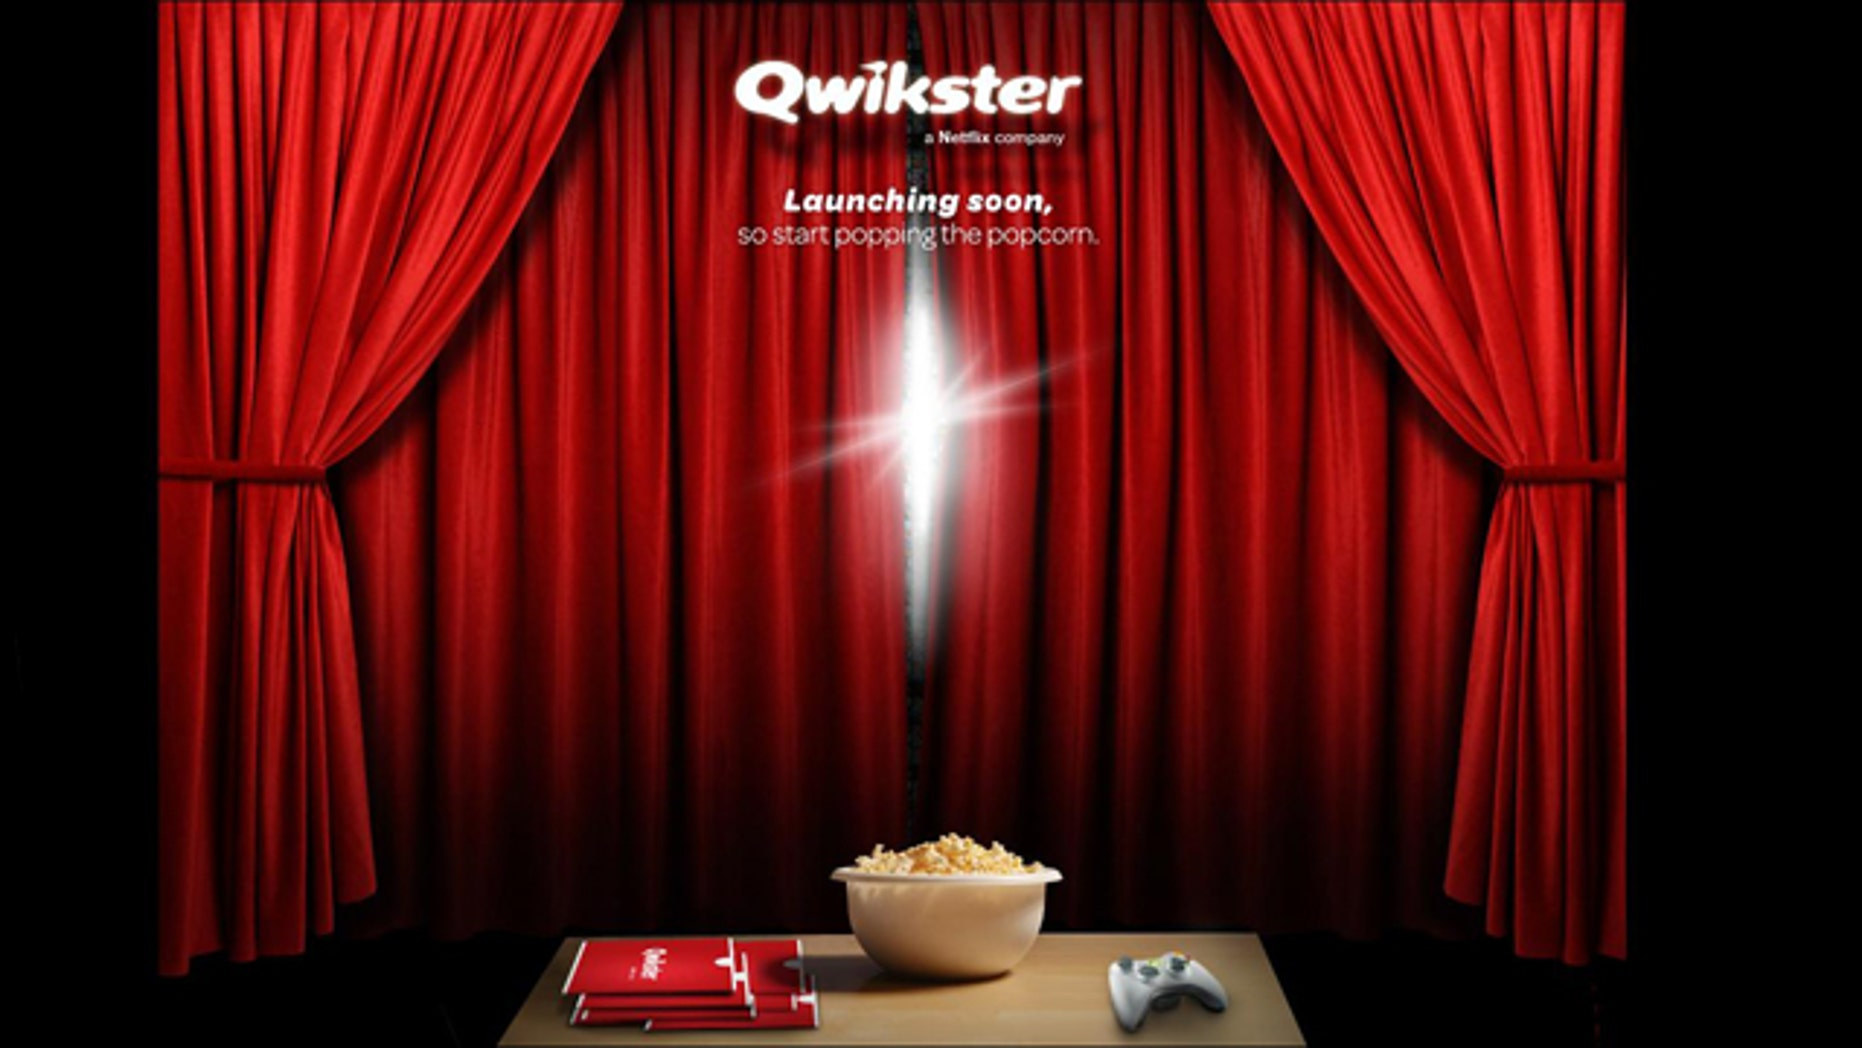 Netflix recently announced plans to divorce its DVD business from its streaming web video service and rebrand it Qwikster -- a plan that turned out to be short-lived.